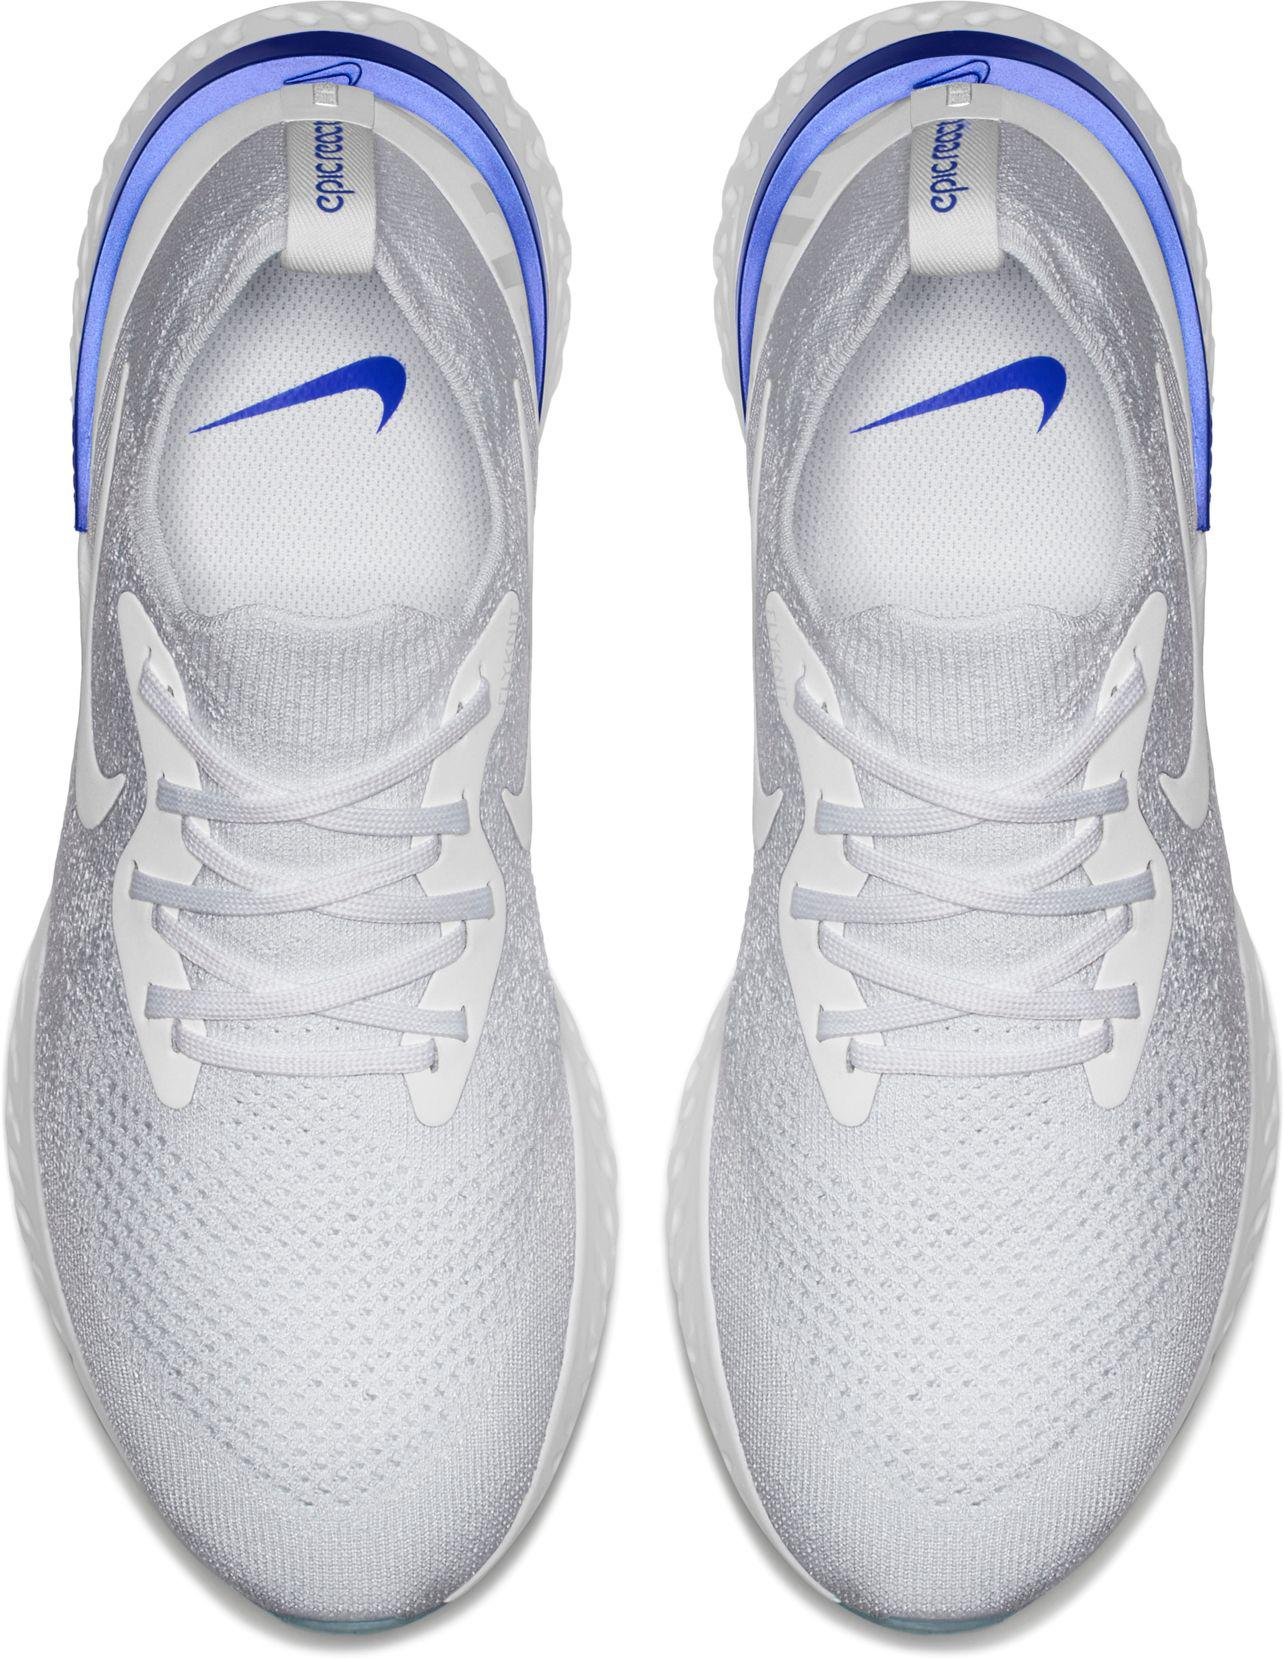 24060ca93f68 Lyst - Nike Epic React Flyknit Running Shoes in White for Men